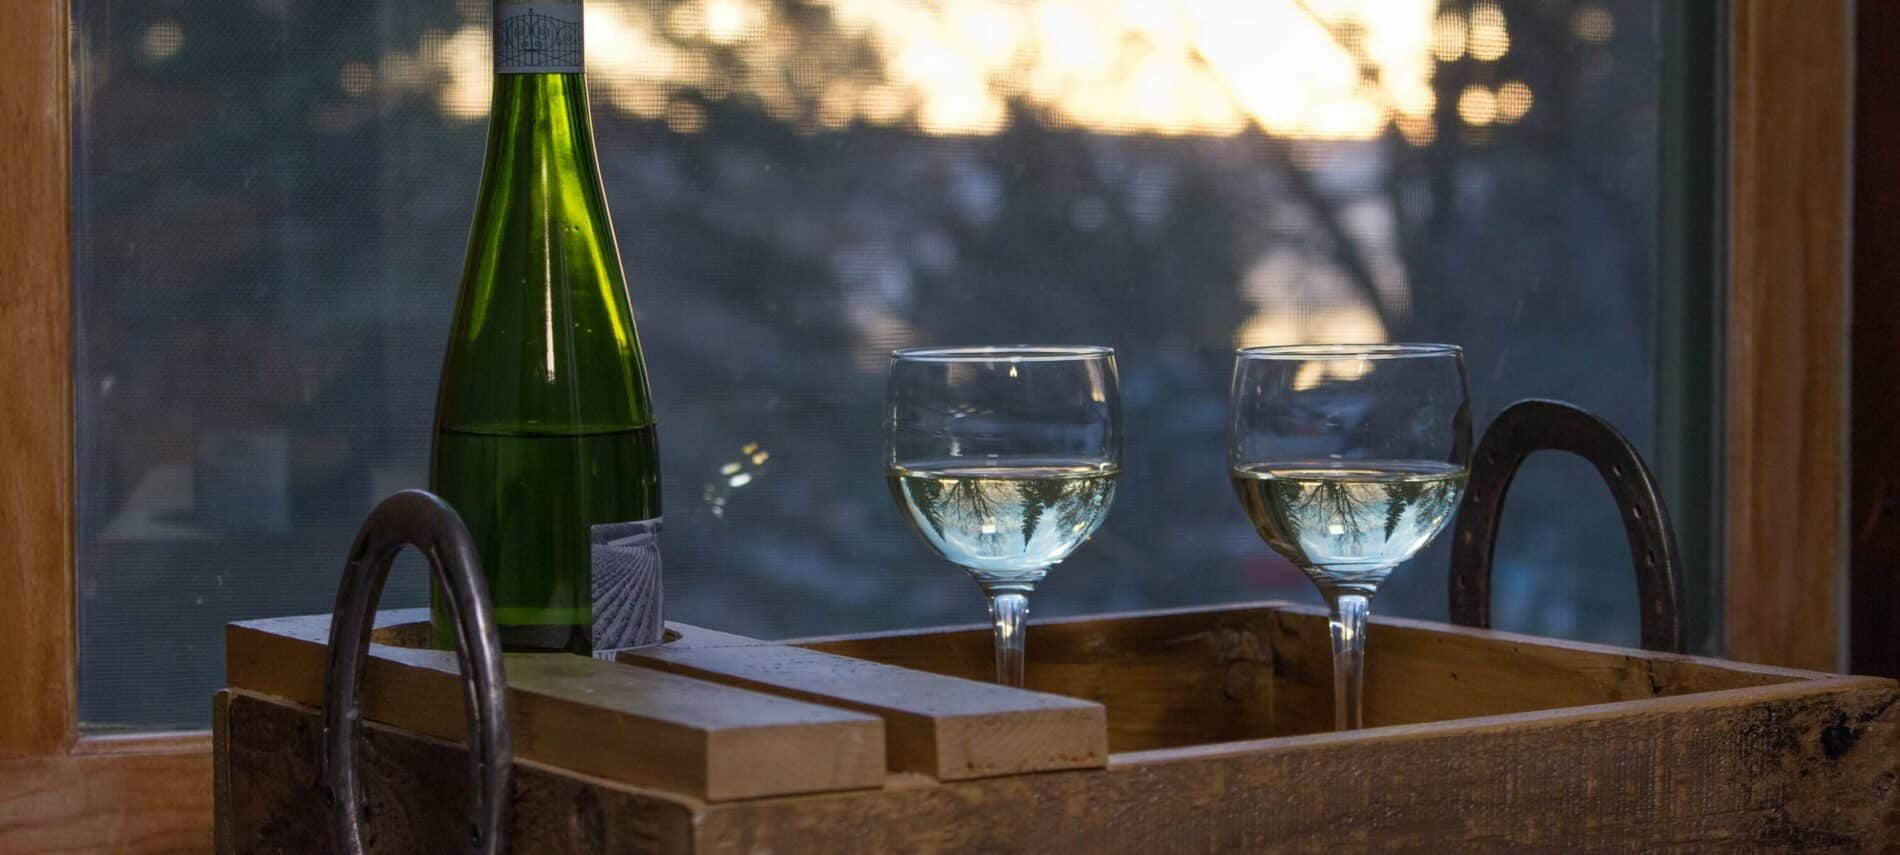 brown wooden tray with wine glasses and wine in front of window overlooking sunrise